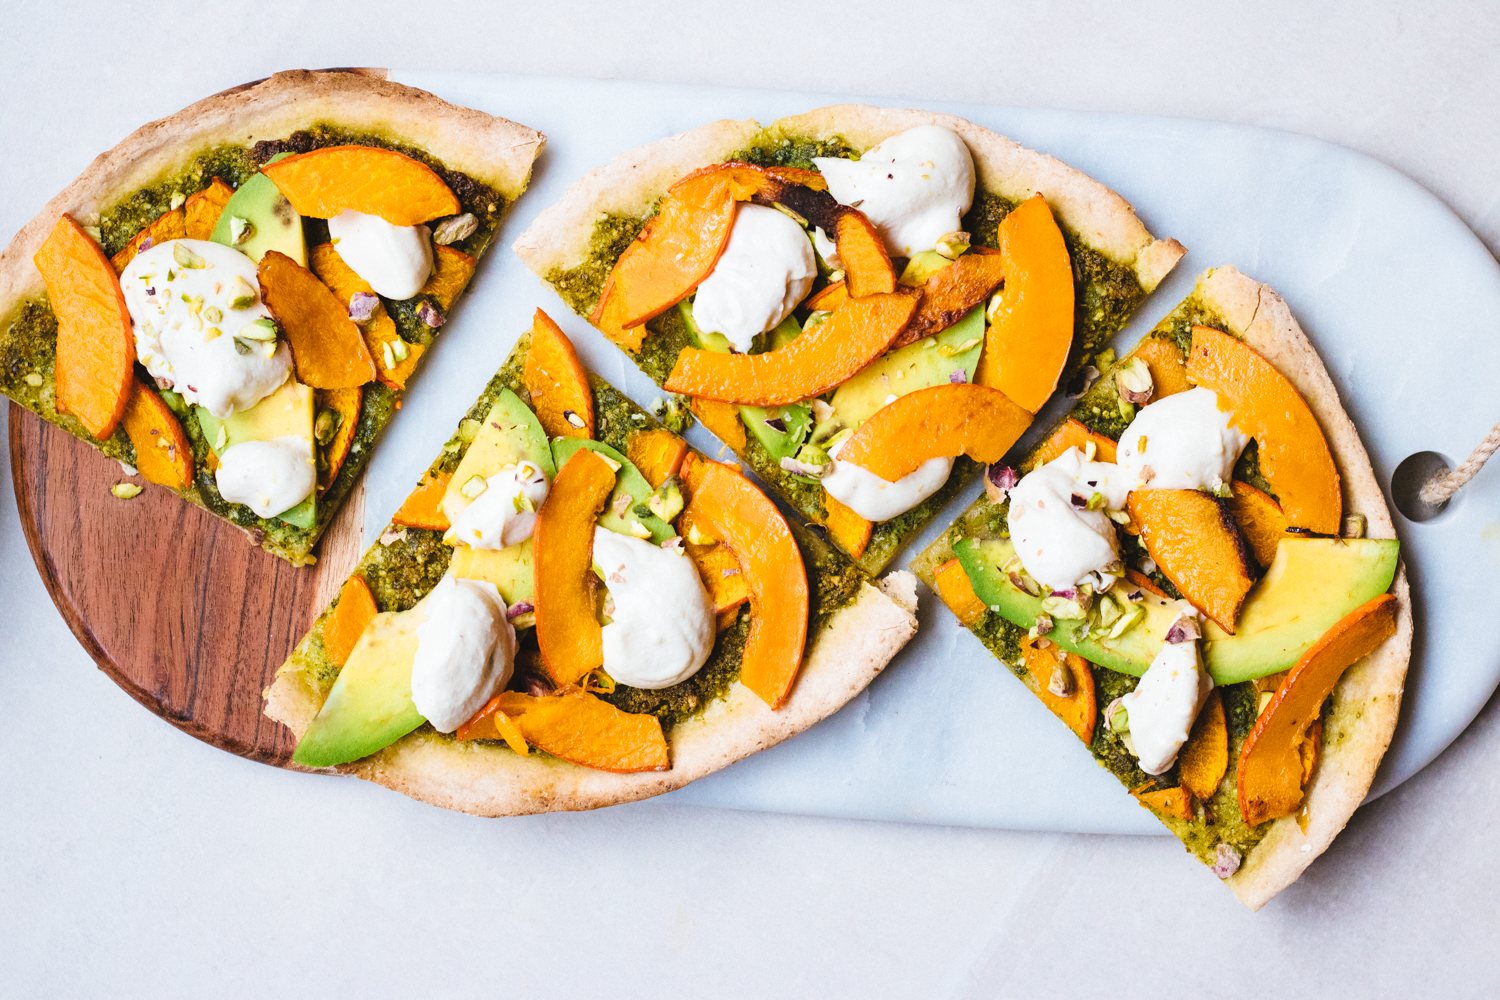 Vegan Pumpkin Pizza recipe gluten free